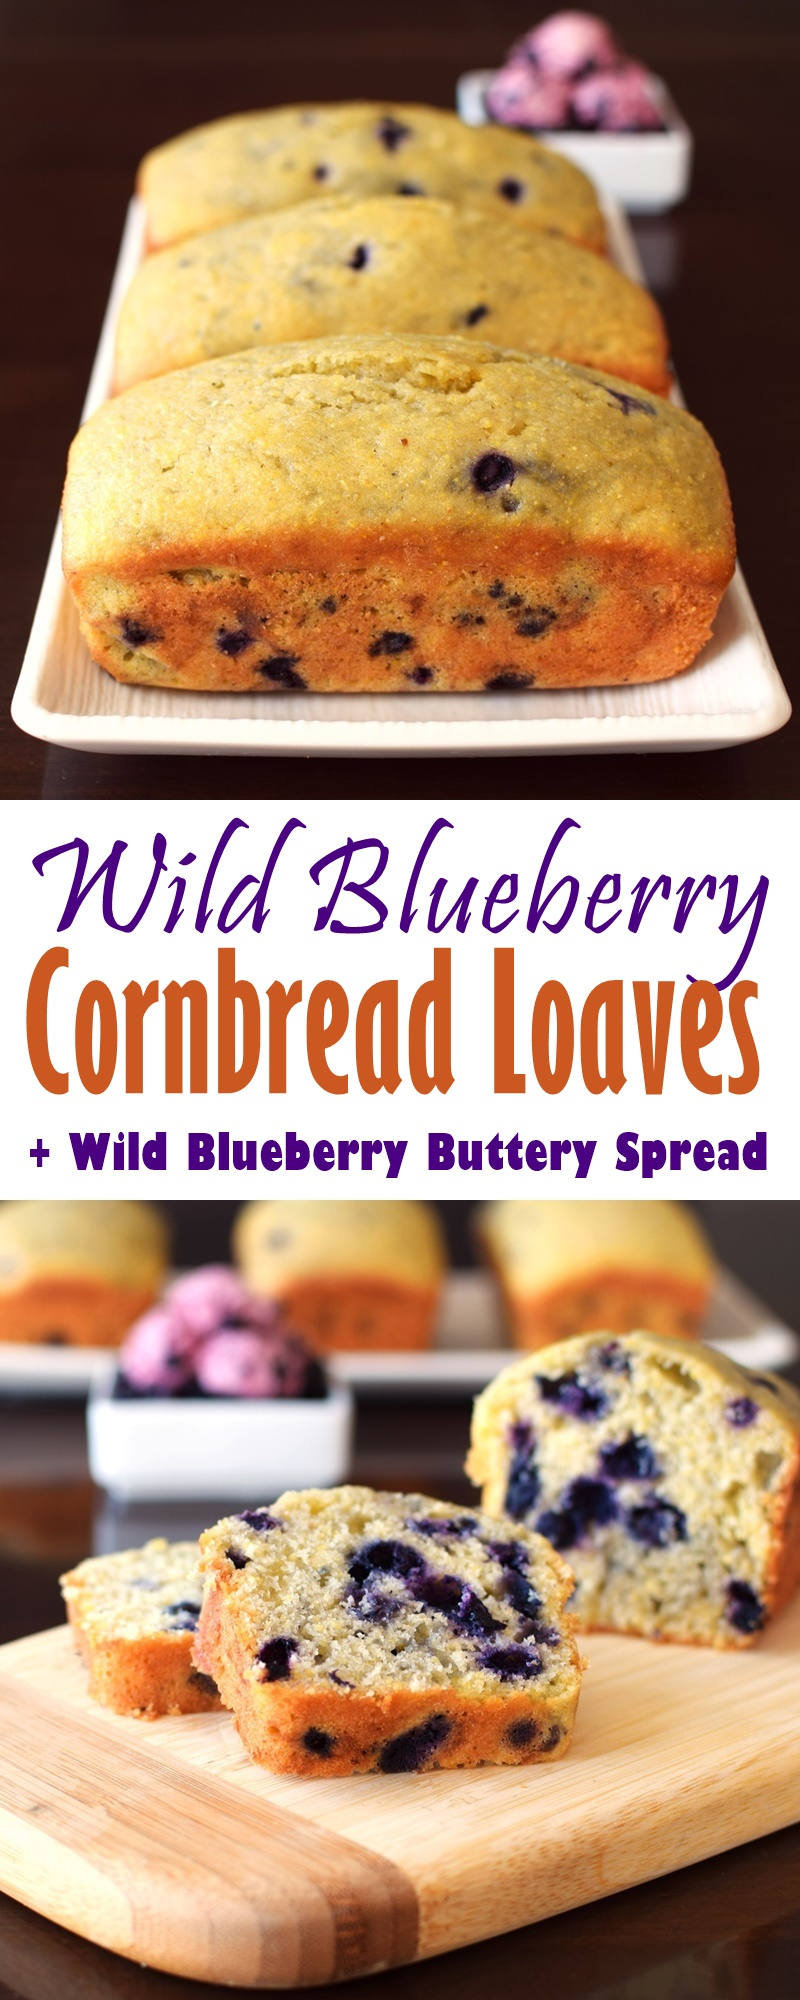 Wild Blueberry Cornbread Loaves with Wild Blueberry Buttery Spread - dairy-free, nut-free + gluten-free optional